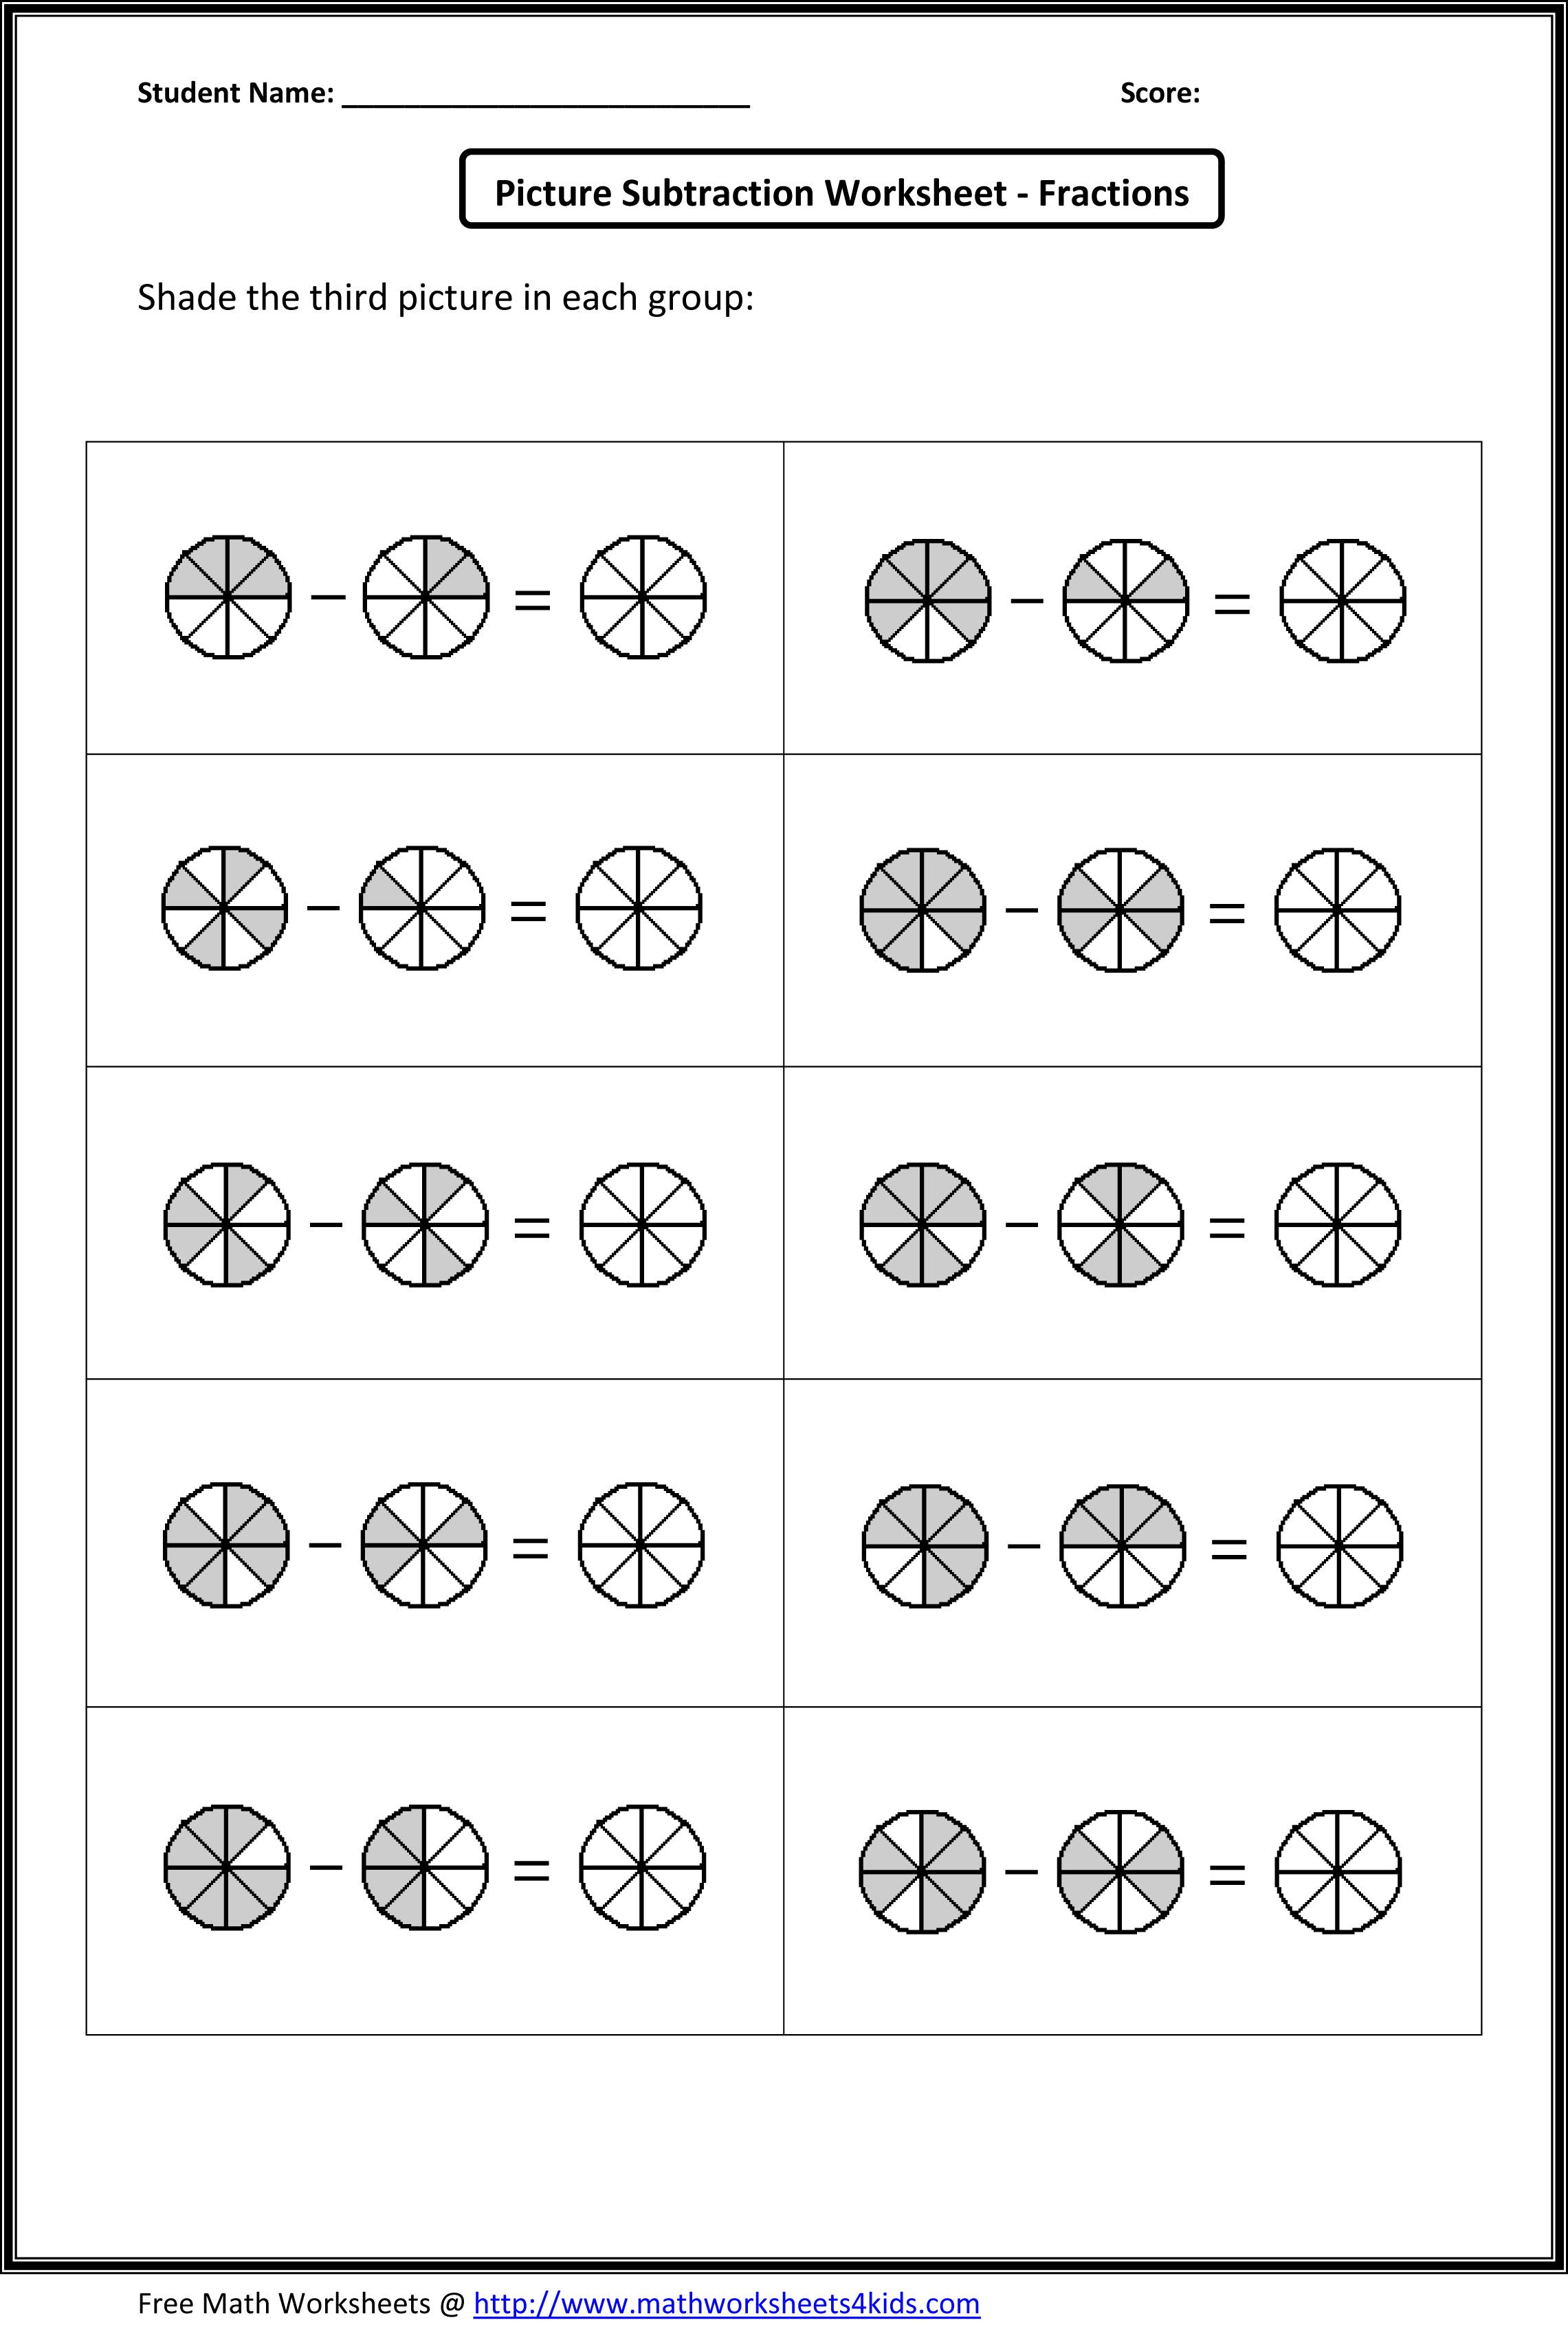 subtracting fractions worksheets | what's new | pinterest | math